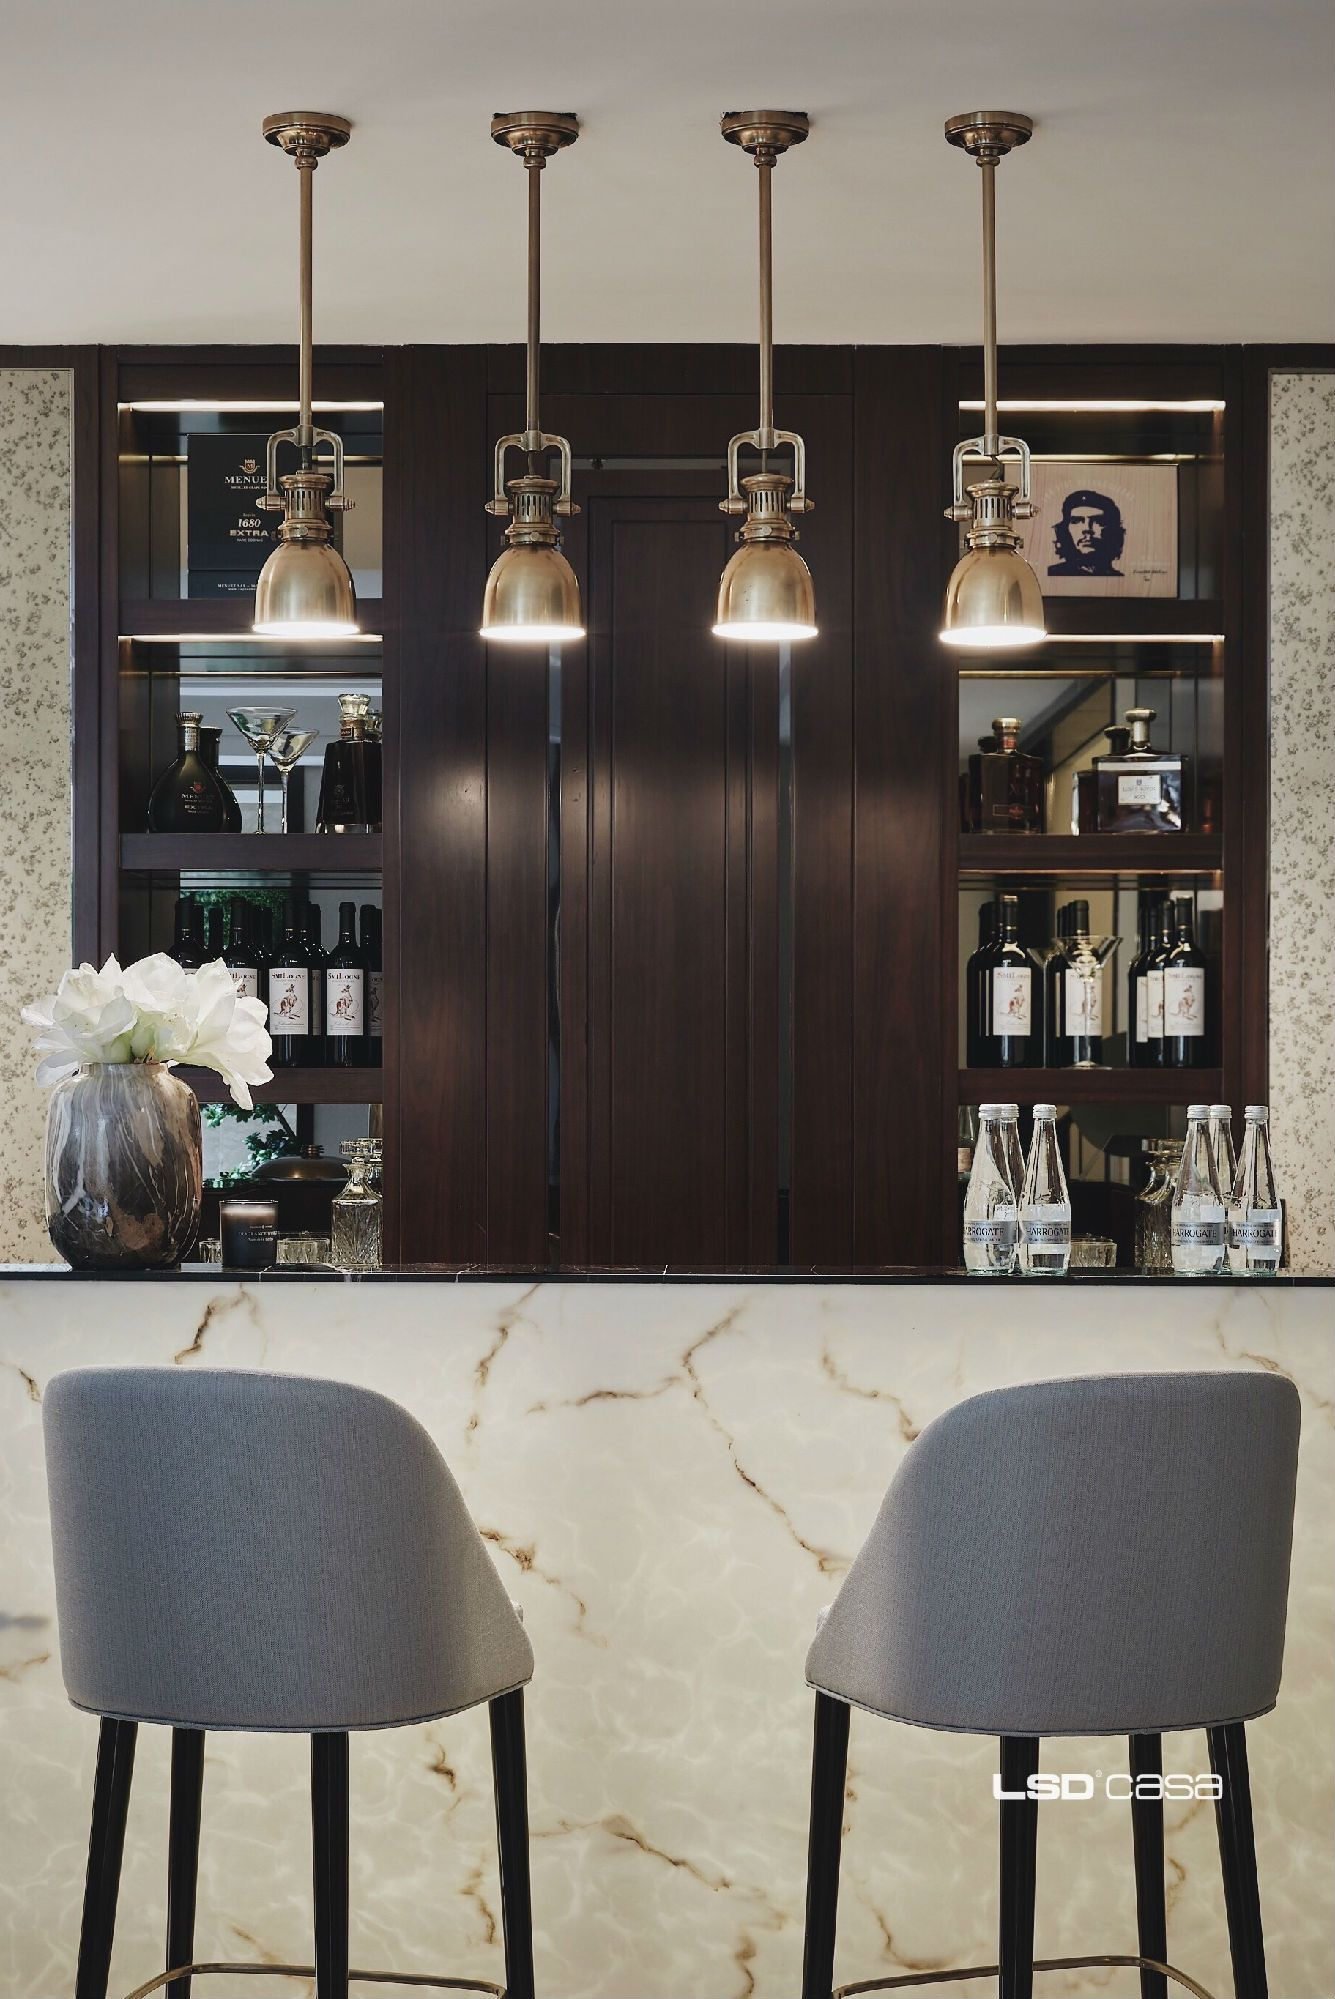 Pin by jesuida zemani on minibar pinterest bar bar areas and